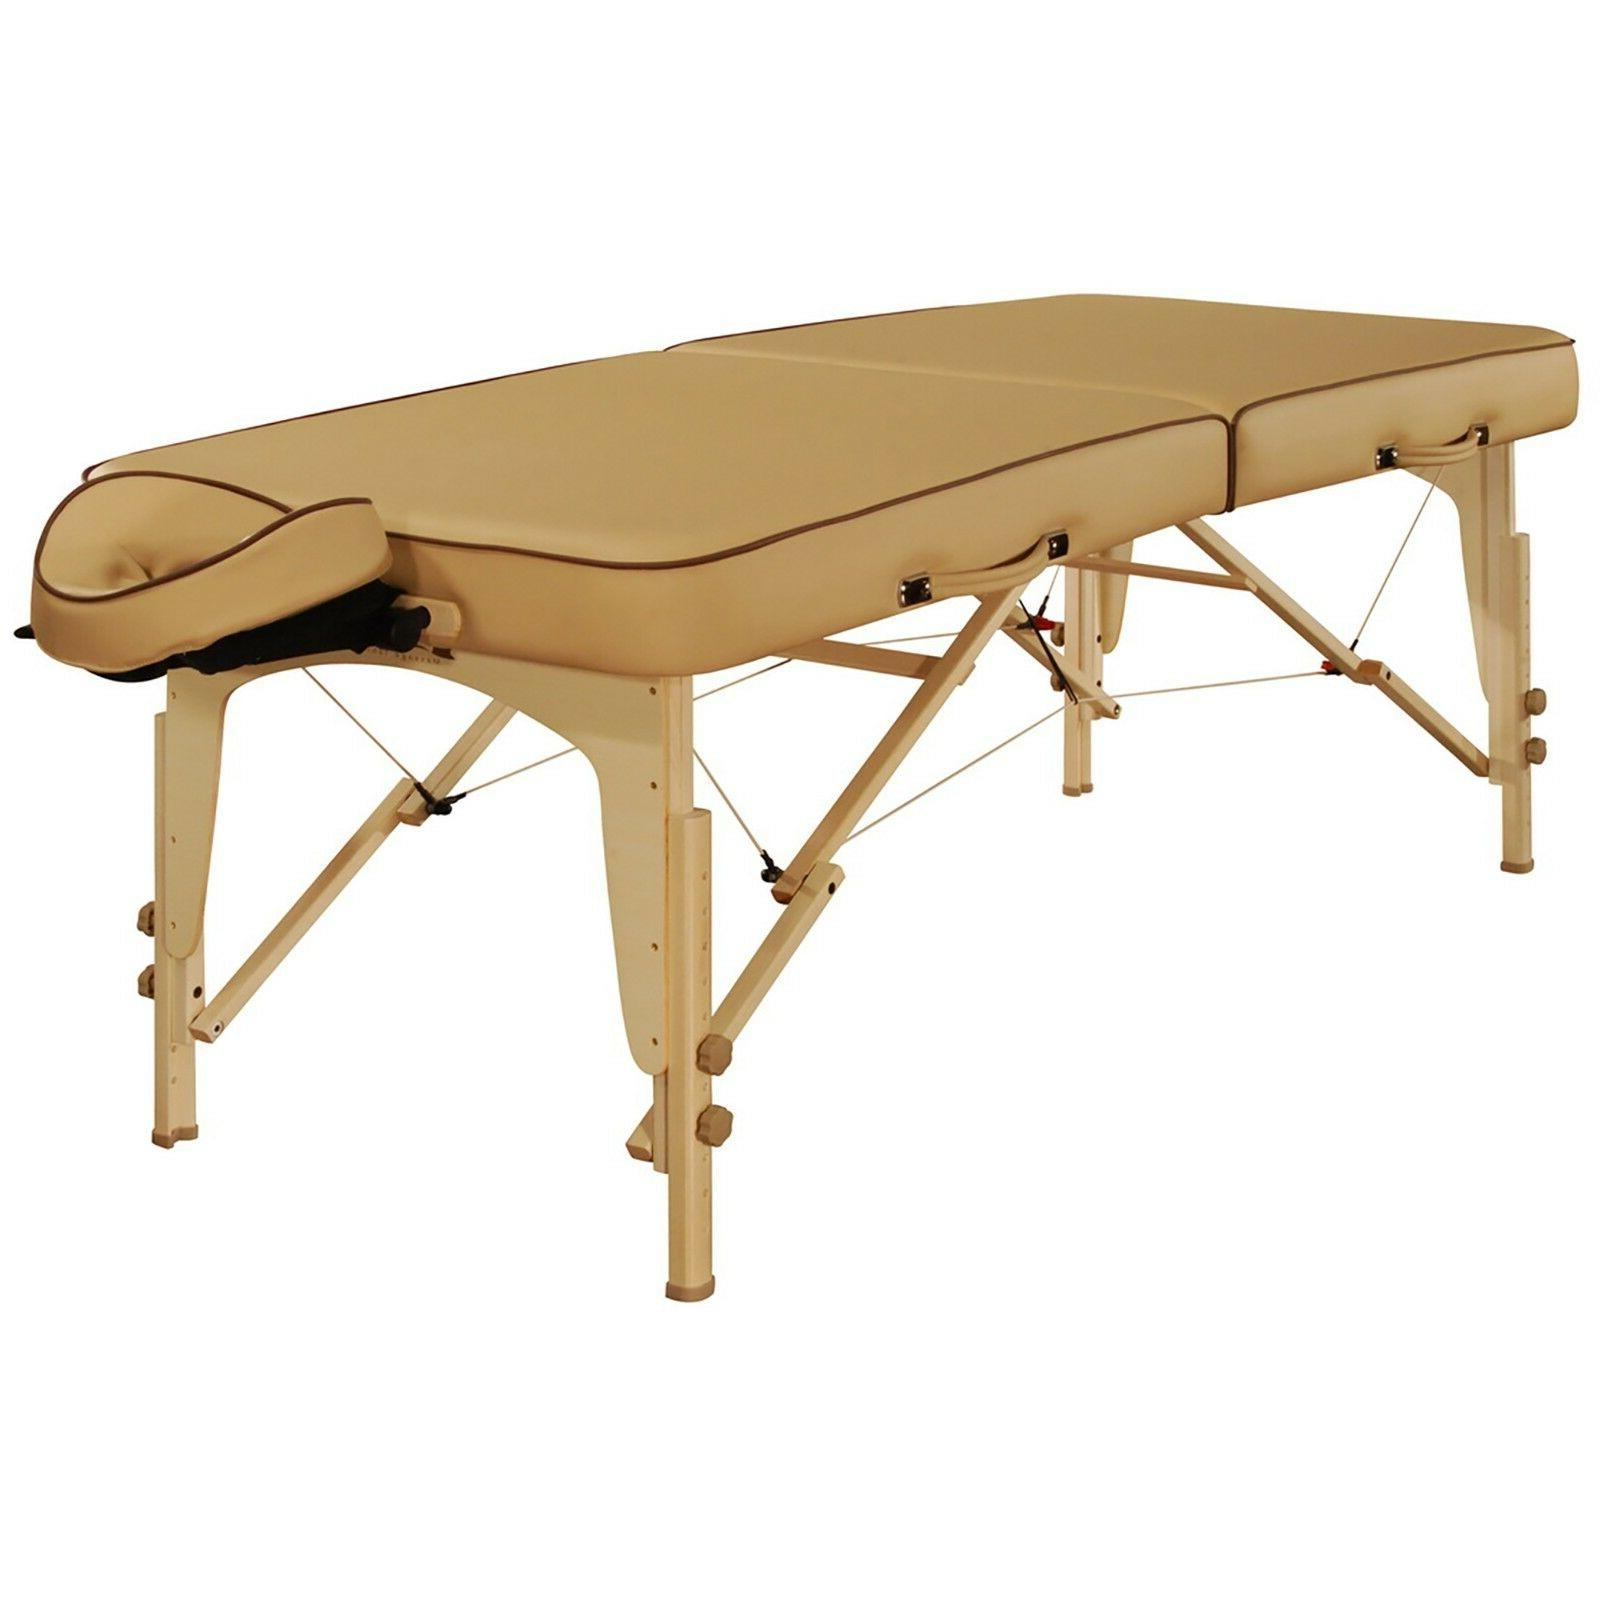 MT Massage 30 inch Lotus Deluxe Portable Package Bed Couch T